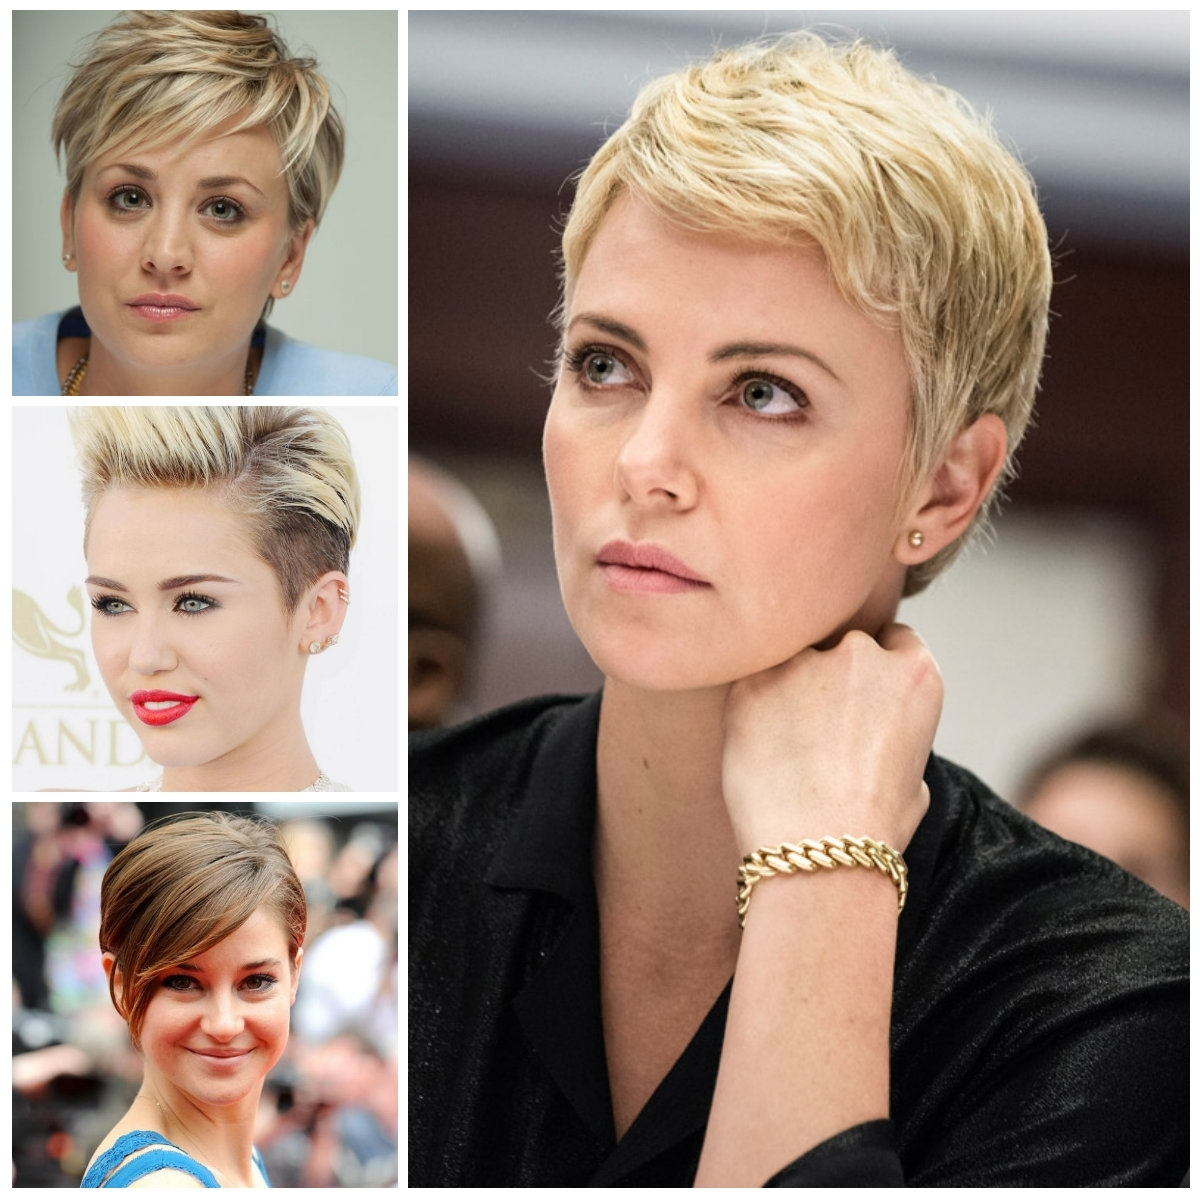 Very Short Pixie Hairstyles 2017 14 With Very Short Pixie Regarding Most Up To Date Modern Pixie Hairstyles (View 13 of 15)